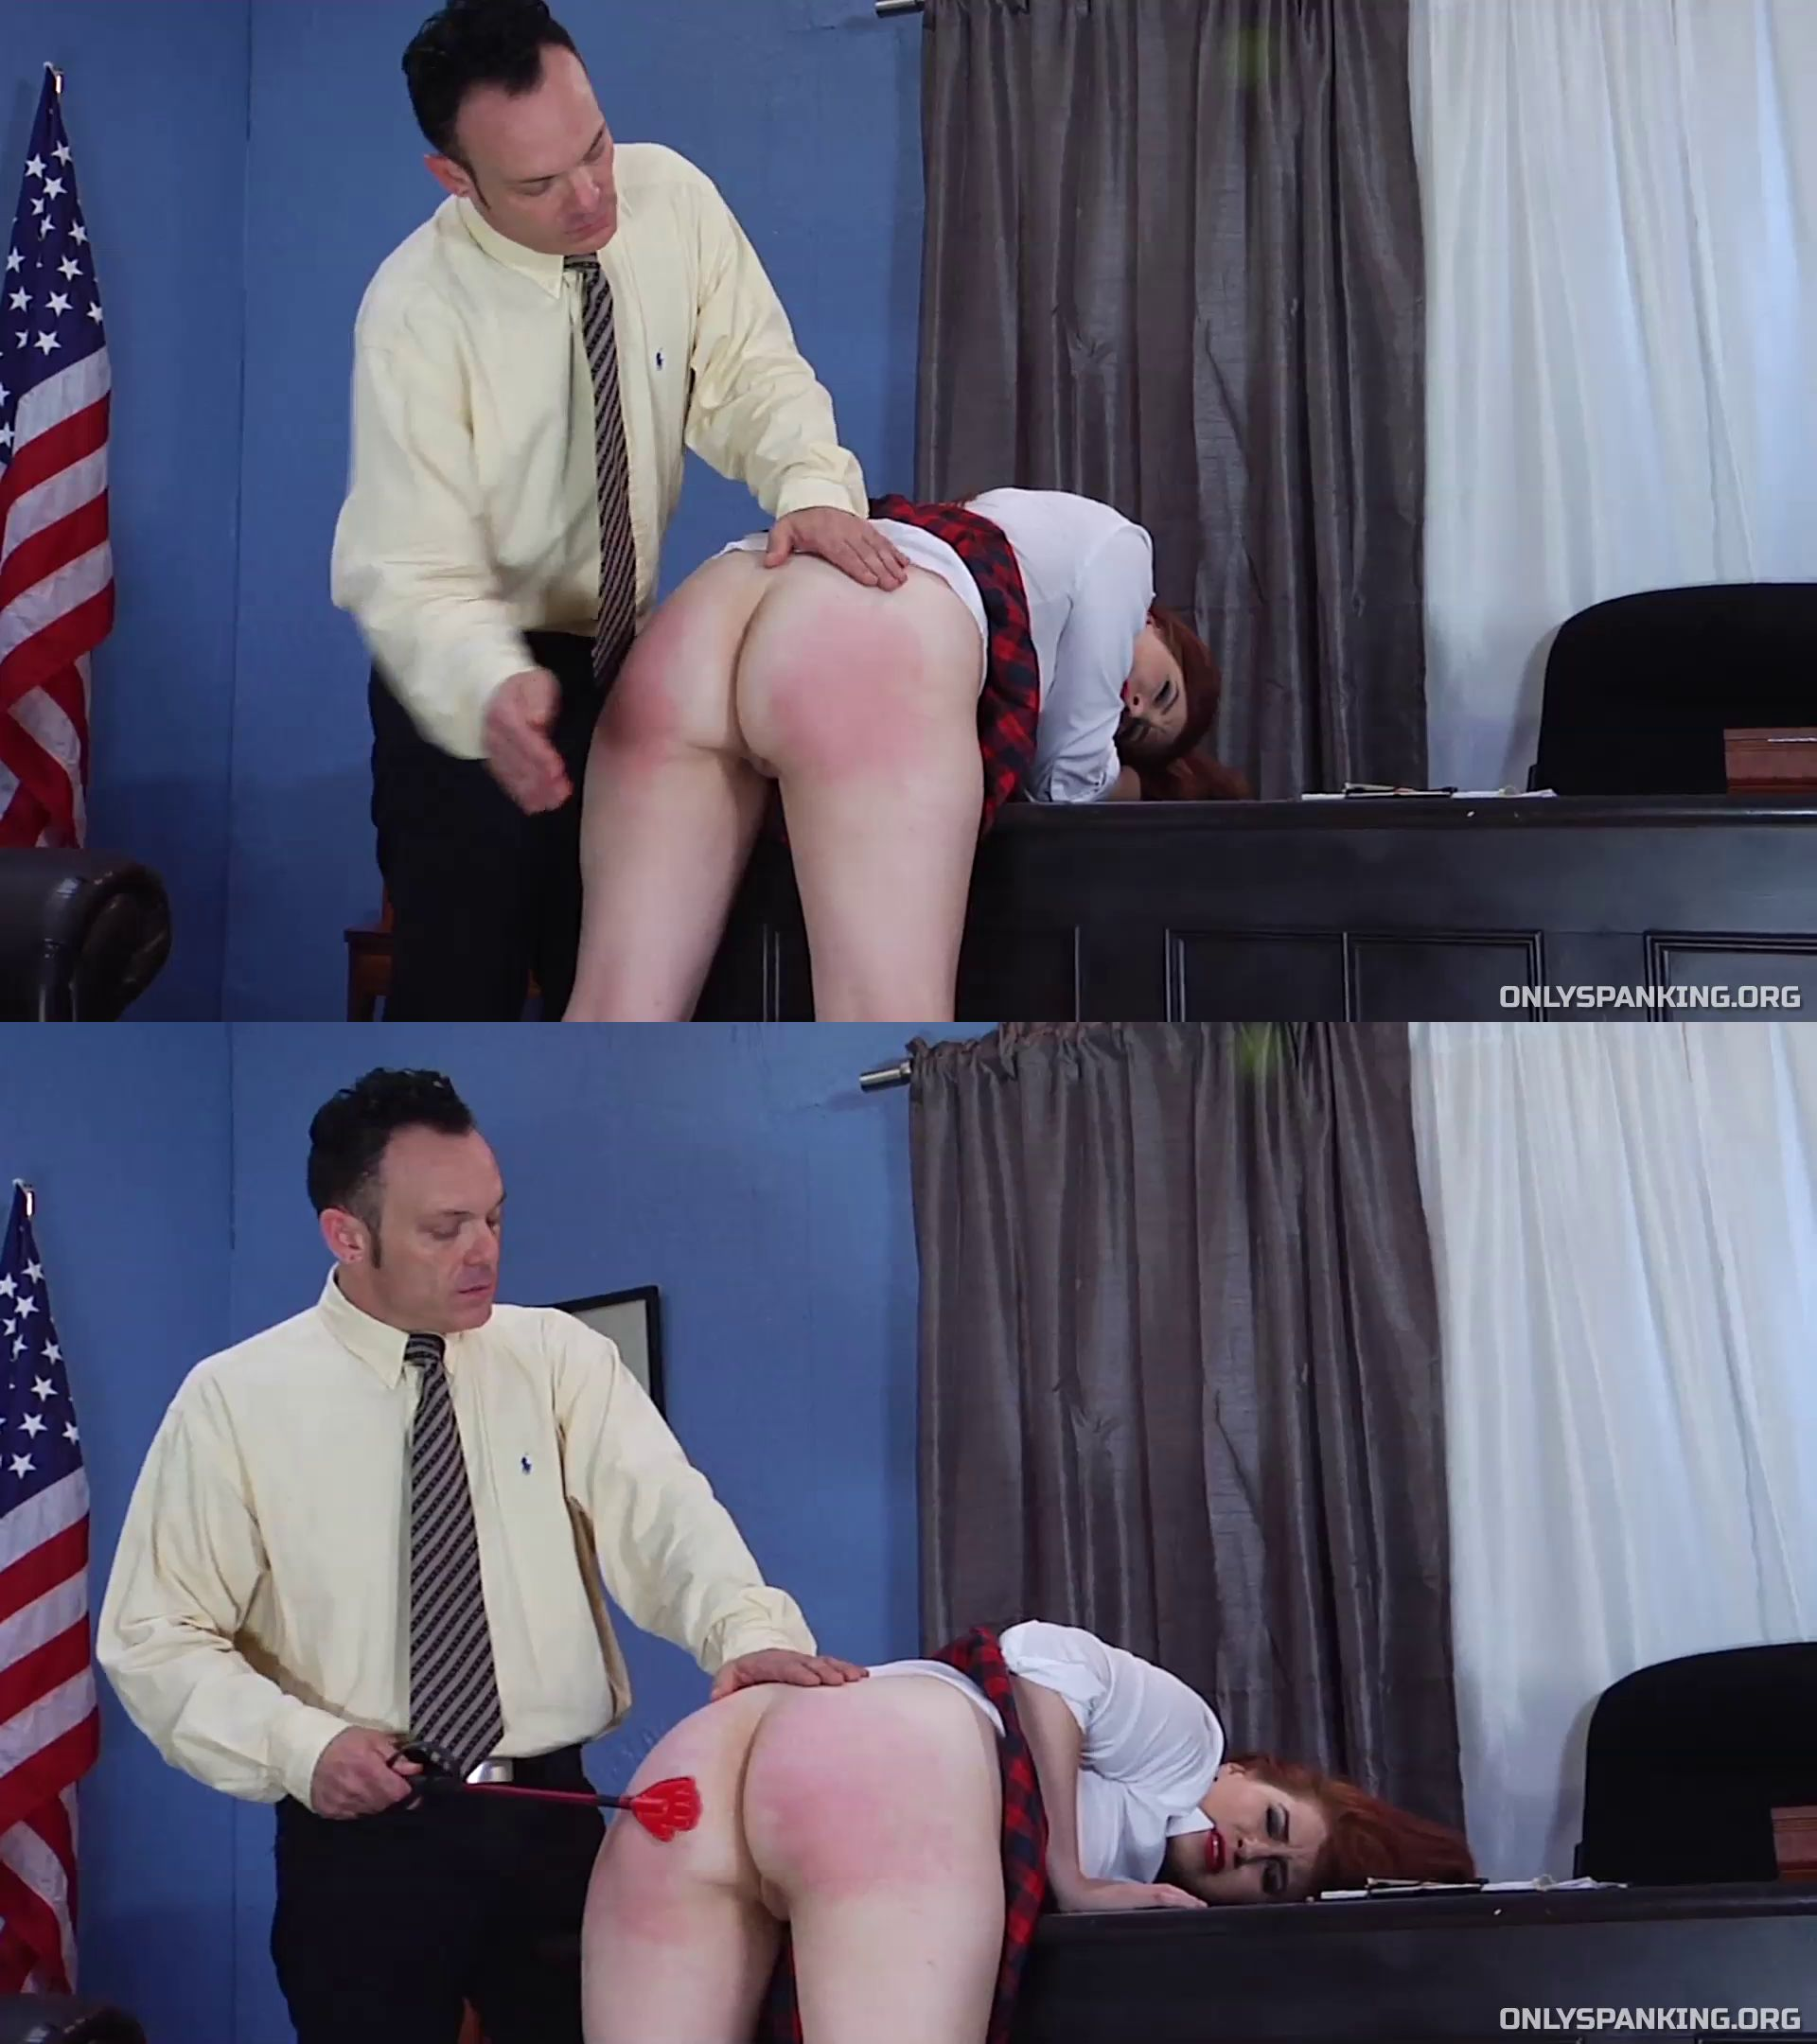 severesexfilms – MP4/HD – Charli Piper, Dominik Kross – The Naughty School Girl Gets Punished With A Spanking